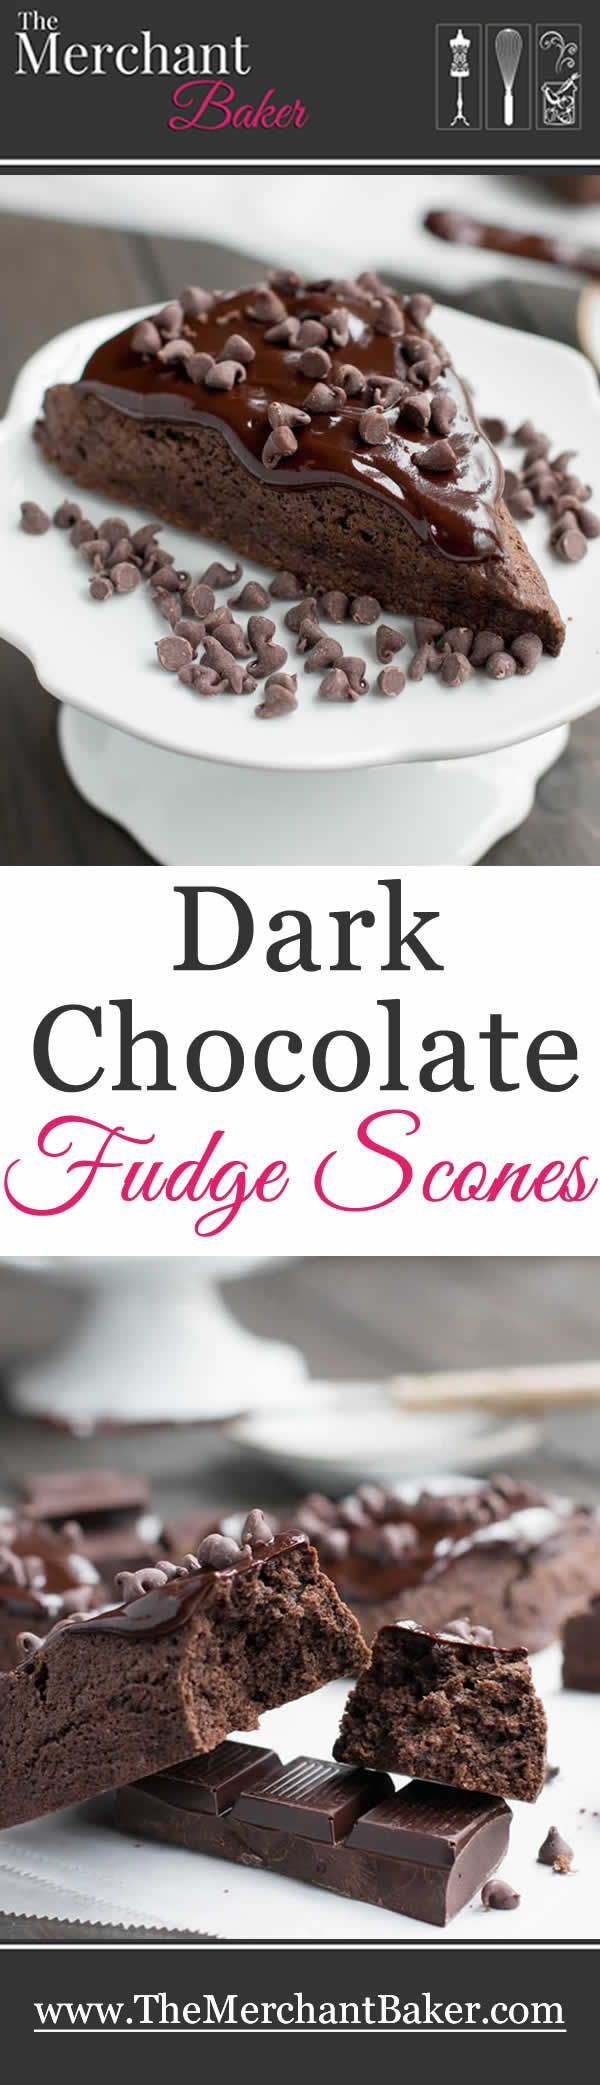 Dark Chocolate Fudge Scones are lightly sweetened, yet rich with dark cocoa, butter and cream, then topped with a dark fudgy ganache and mini chips.